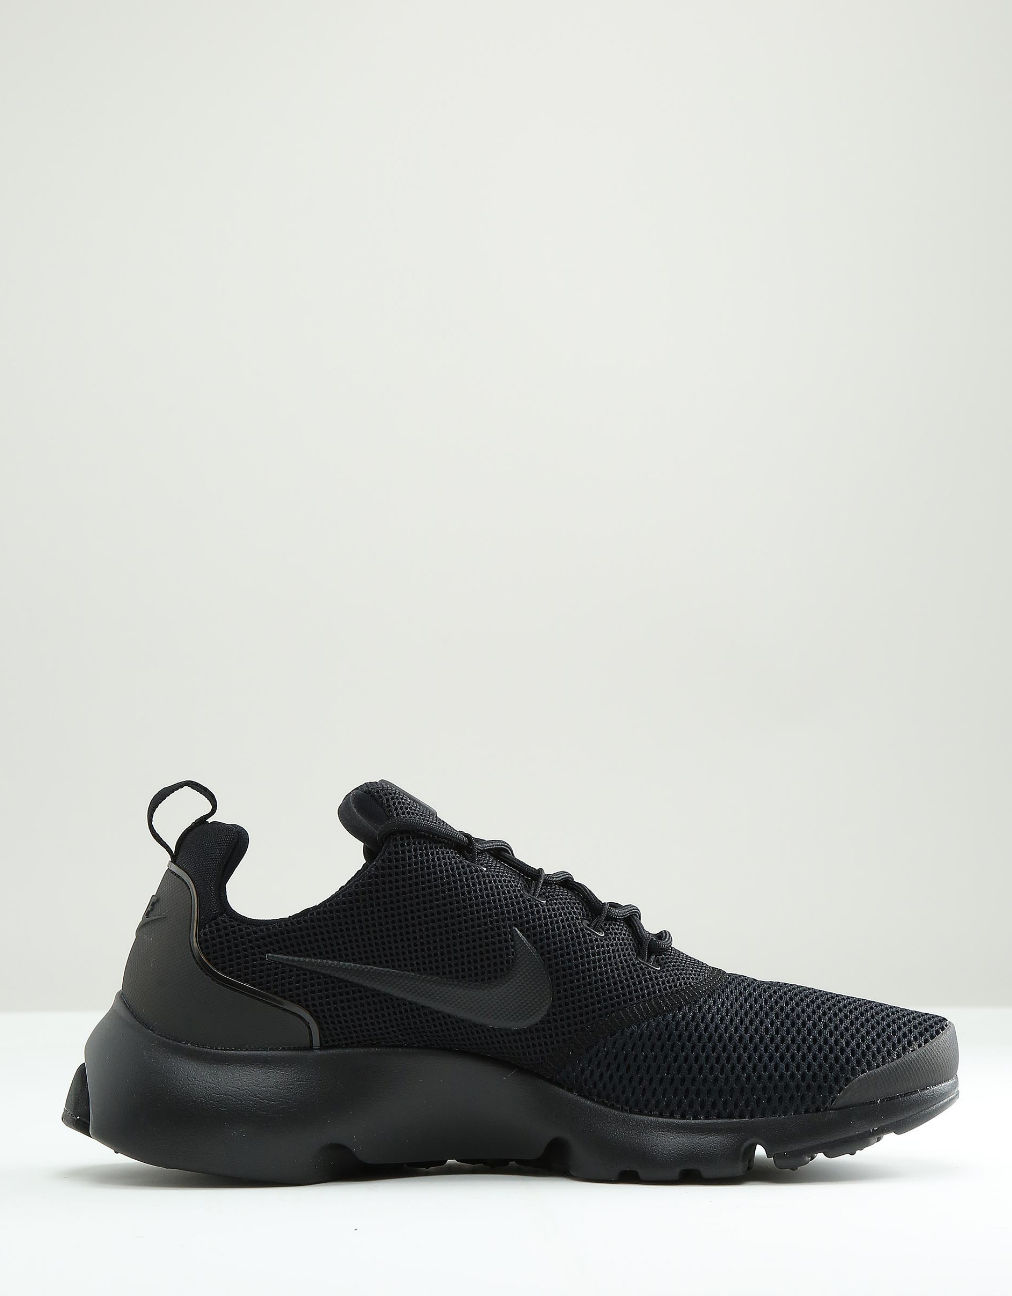 Nike Presto Fly Trainers In Black 908019-001 from ASOS (men, style,